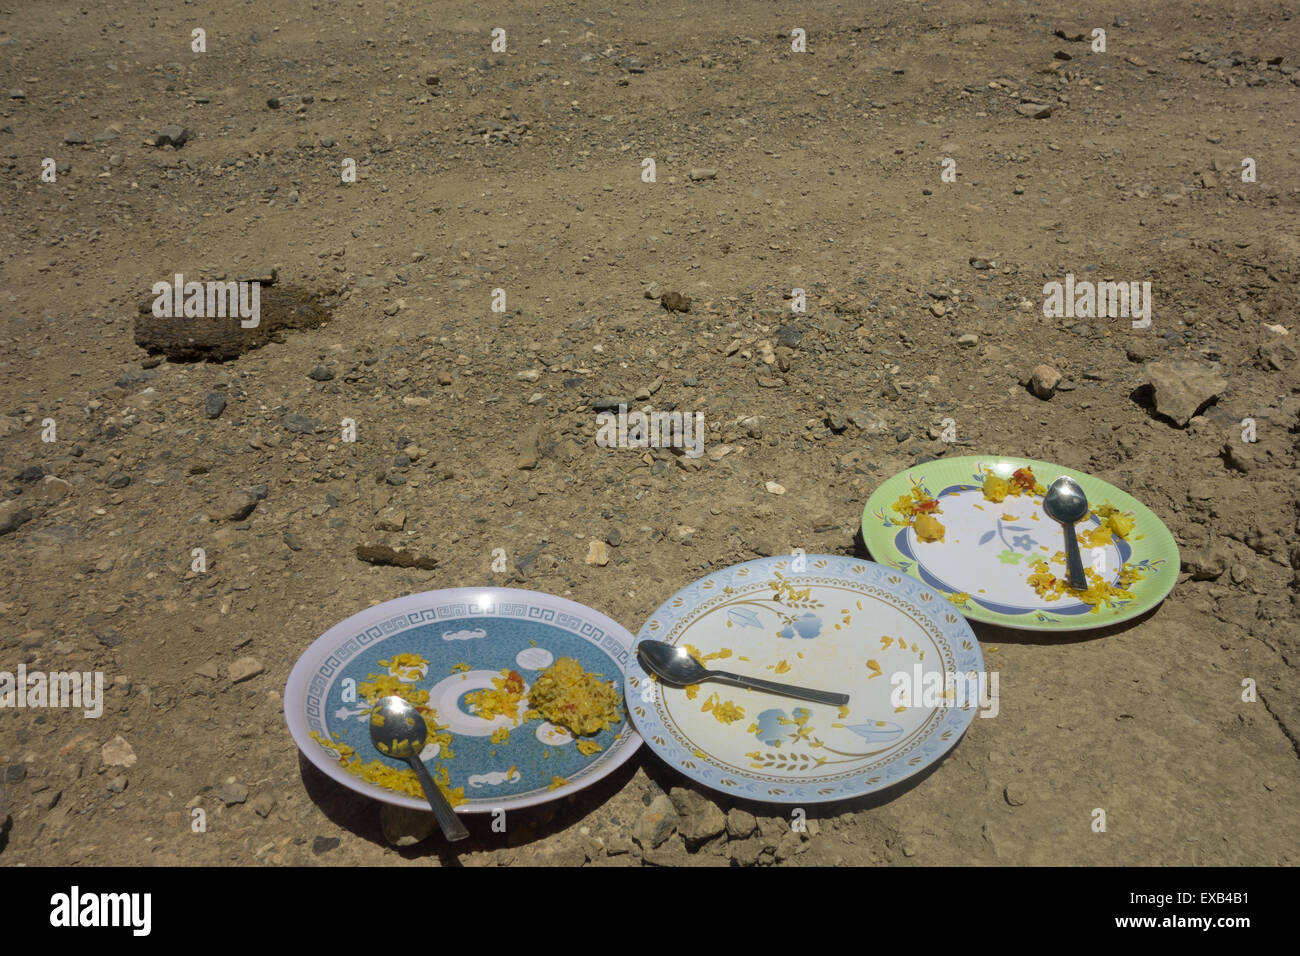 empty plates of vegetables and rice on trek in the Spiti Valley, Himachal Pradesh, India - food and guide provided - Stock Image